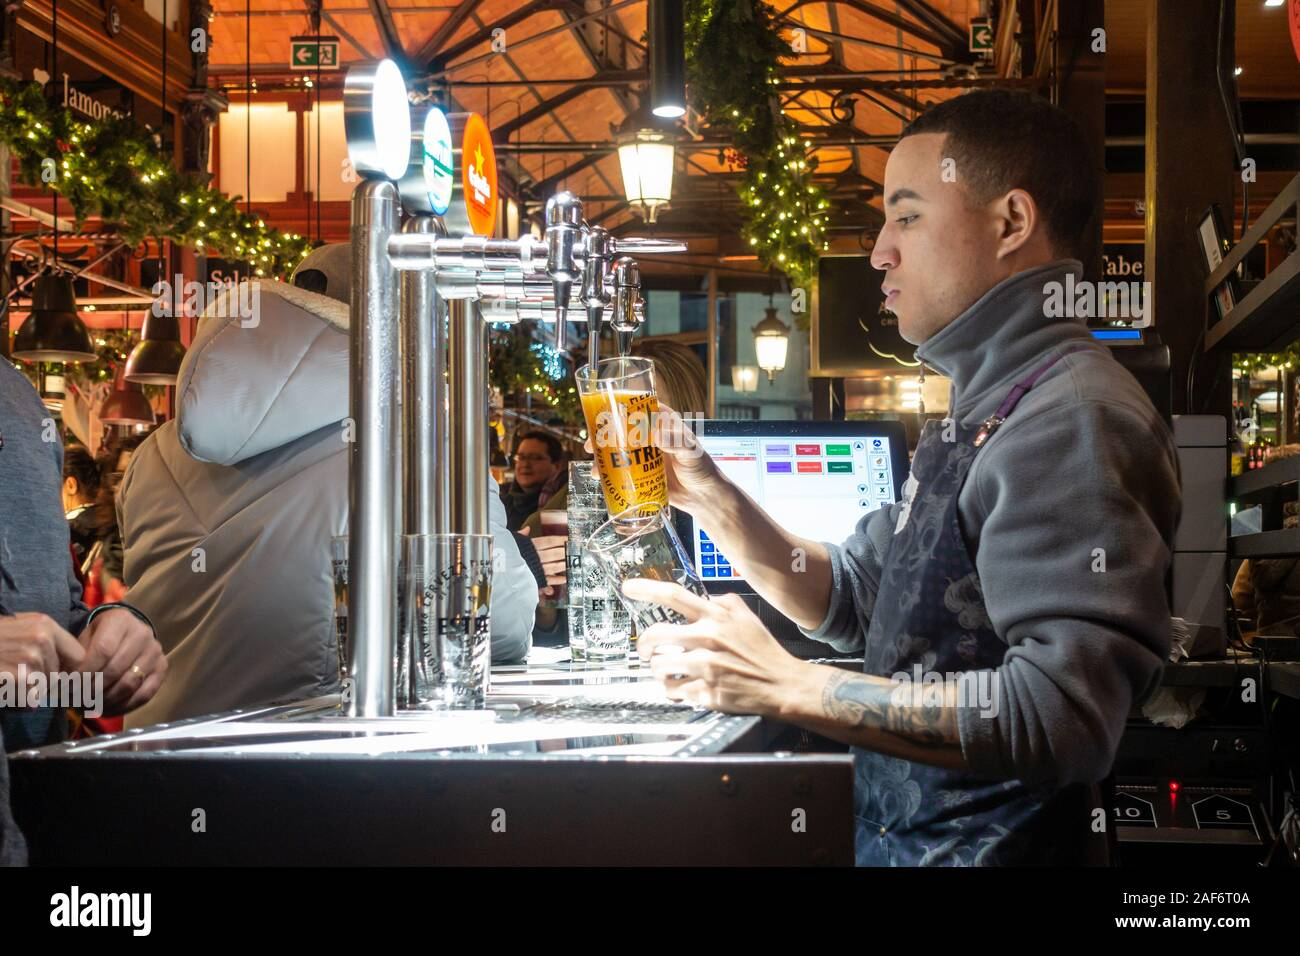 a-barman-pours-a-beer-for-a-customer-in-mercado-san-miguel-an-indoor-market-in-madrid-spain-seen-here-on-the-evening-close-to-christmas-2AF6T0A.jpg